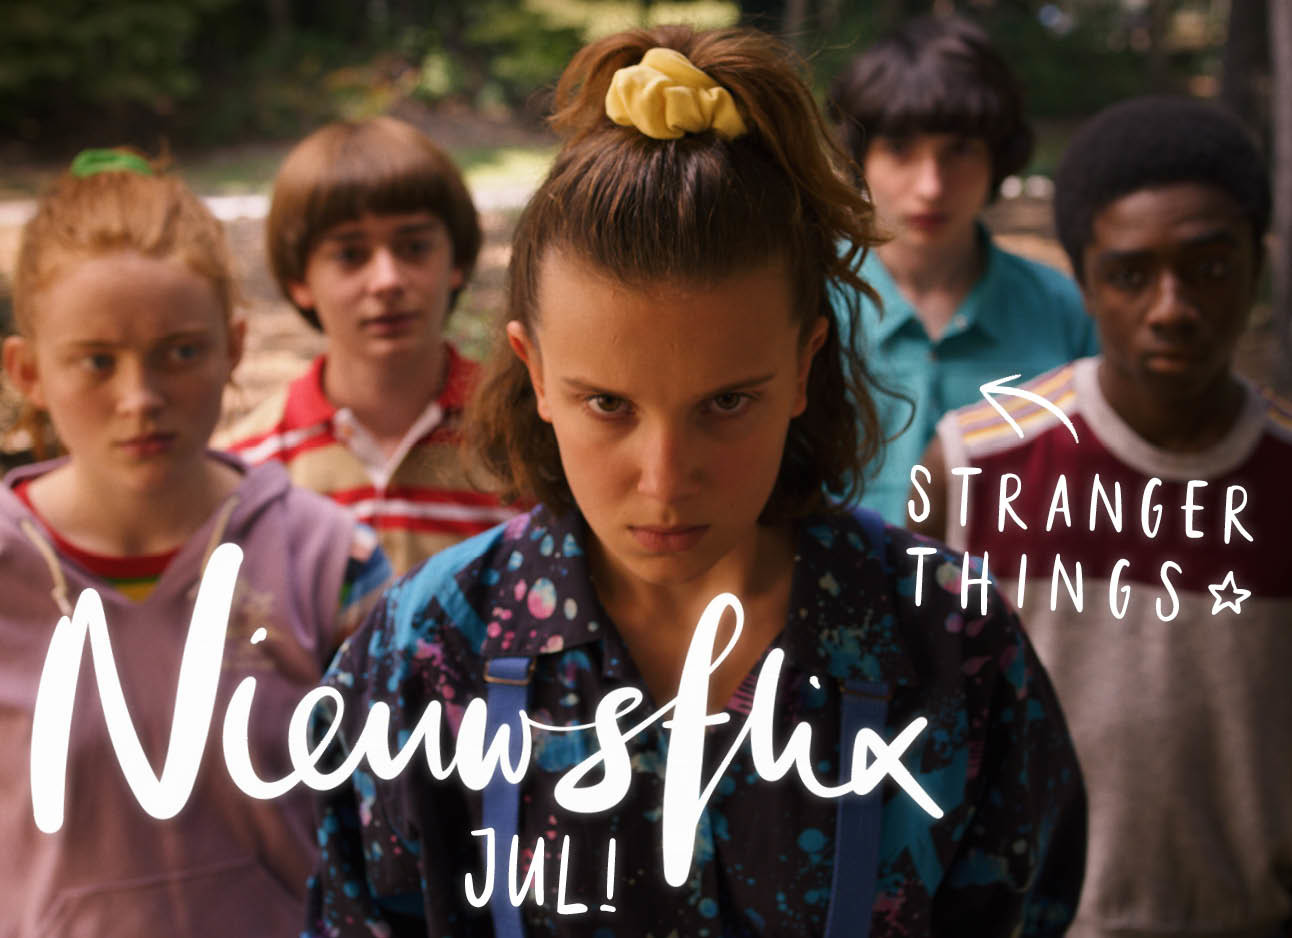 stranger things cast nieuwsflix juli